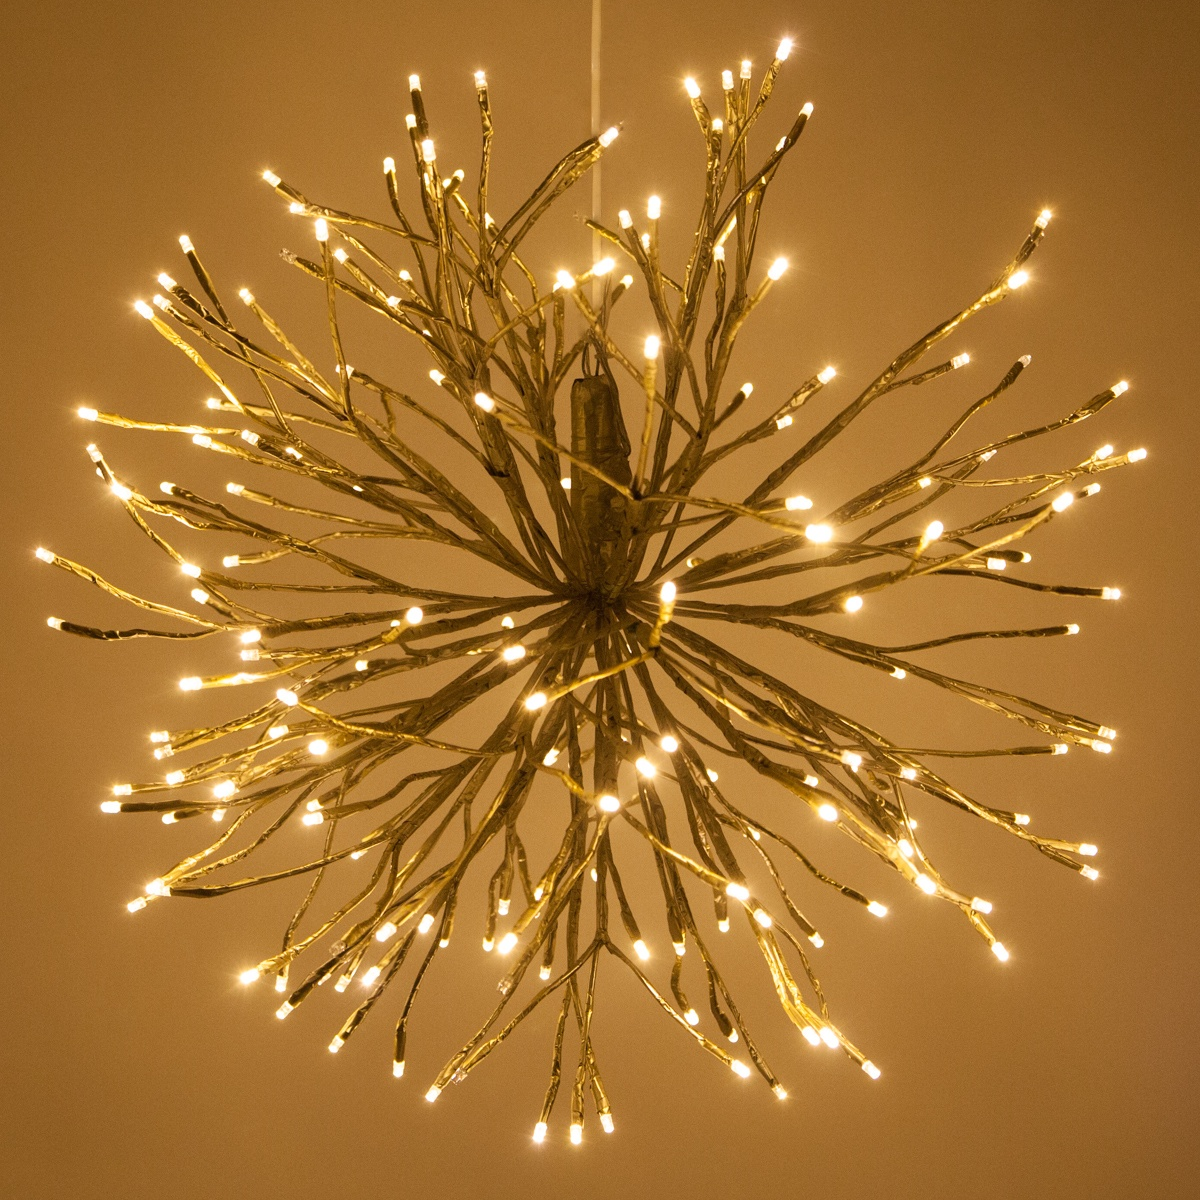 Gold Starburst Lighted Branches With Warm White Led